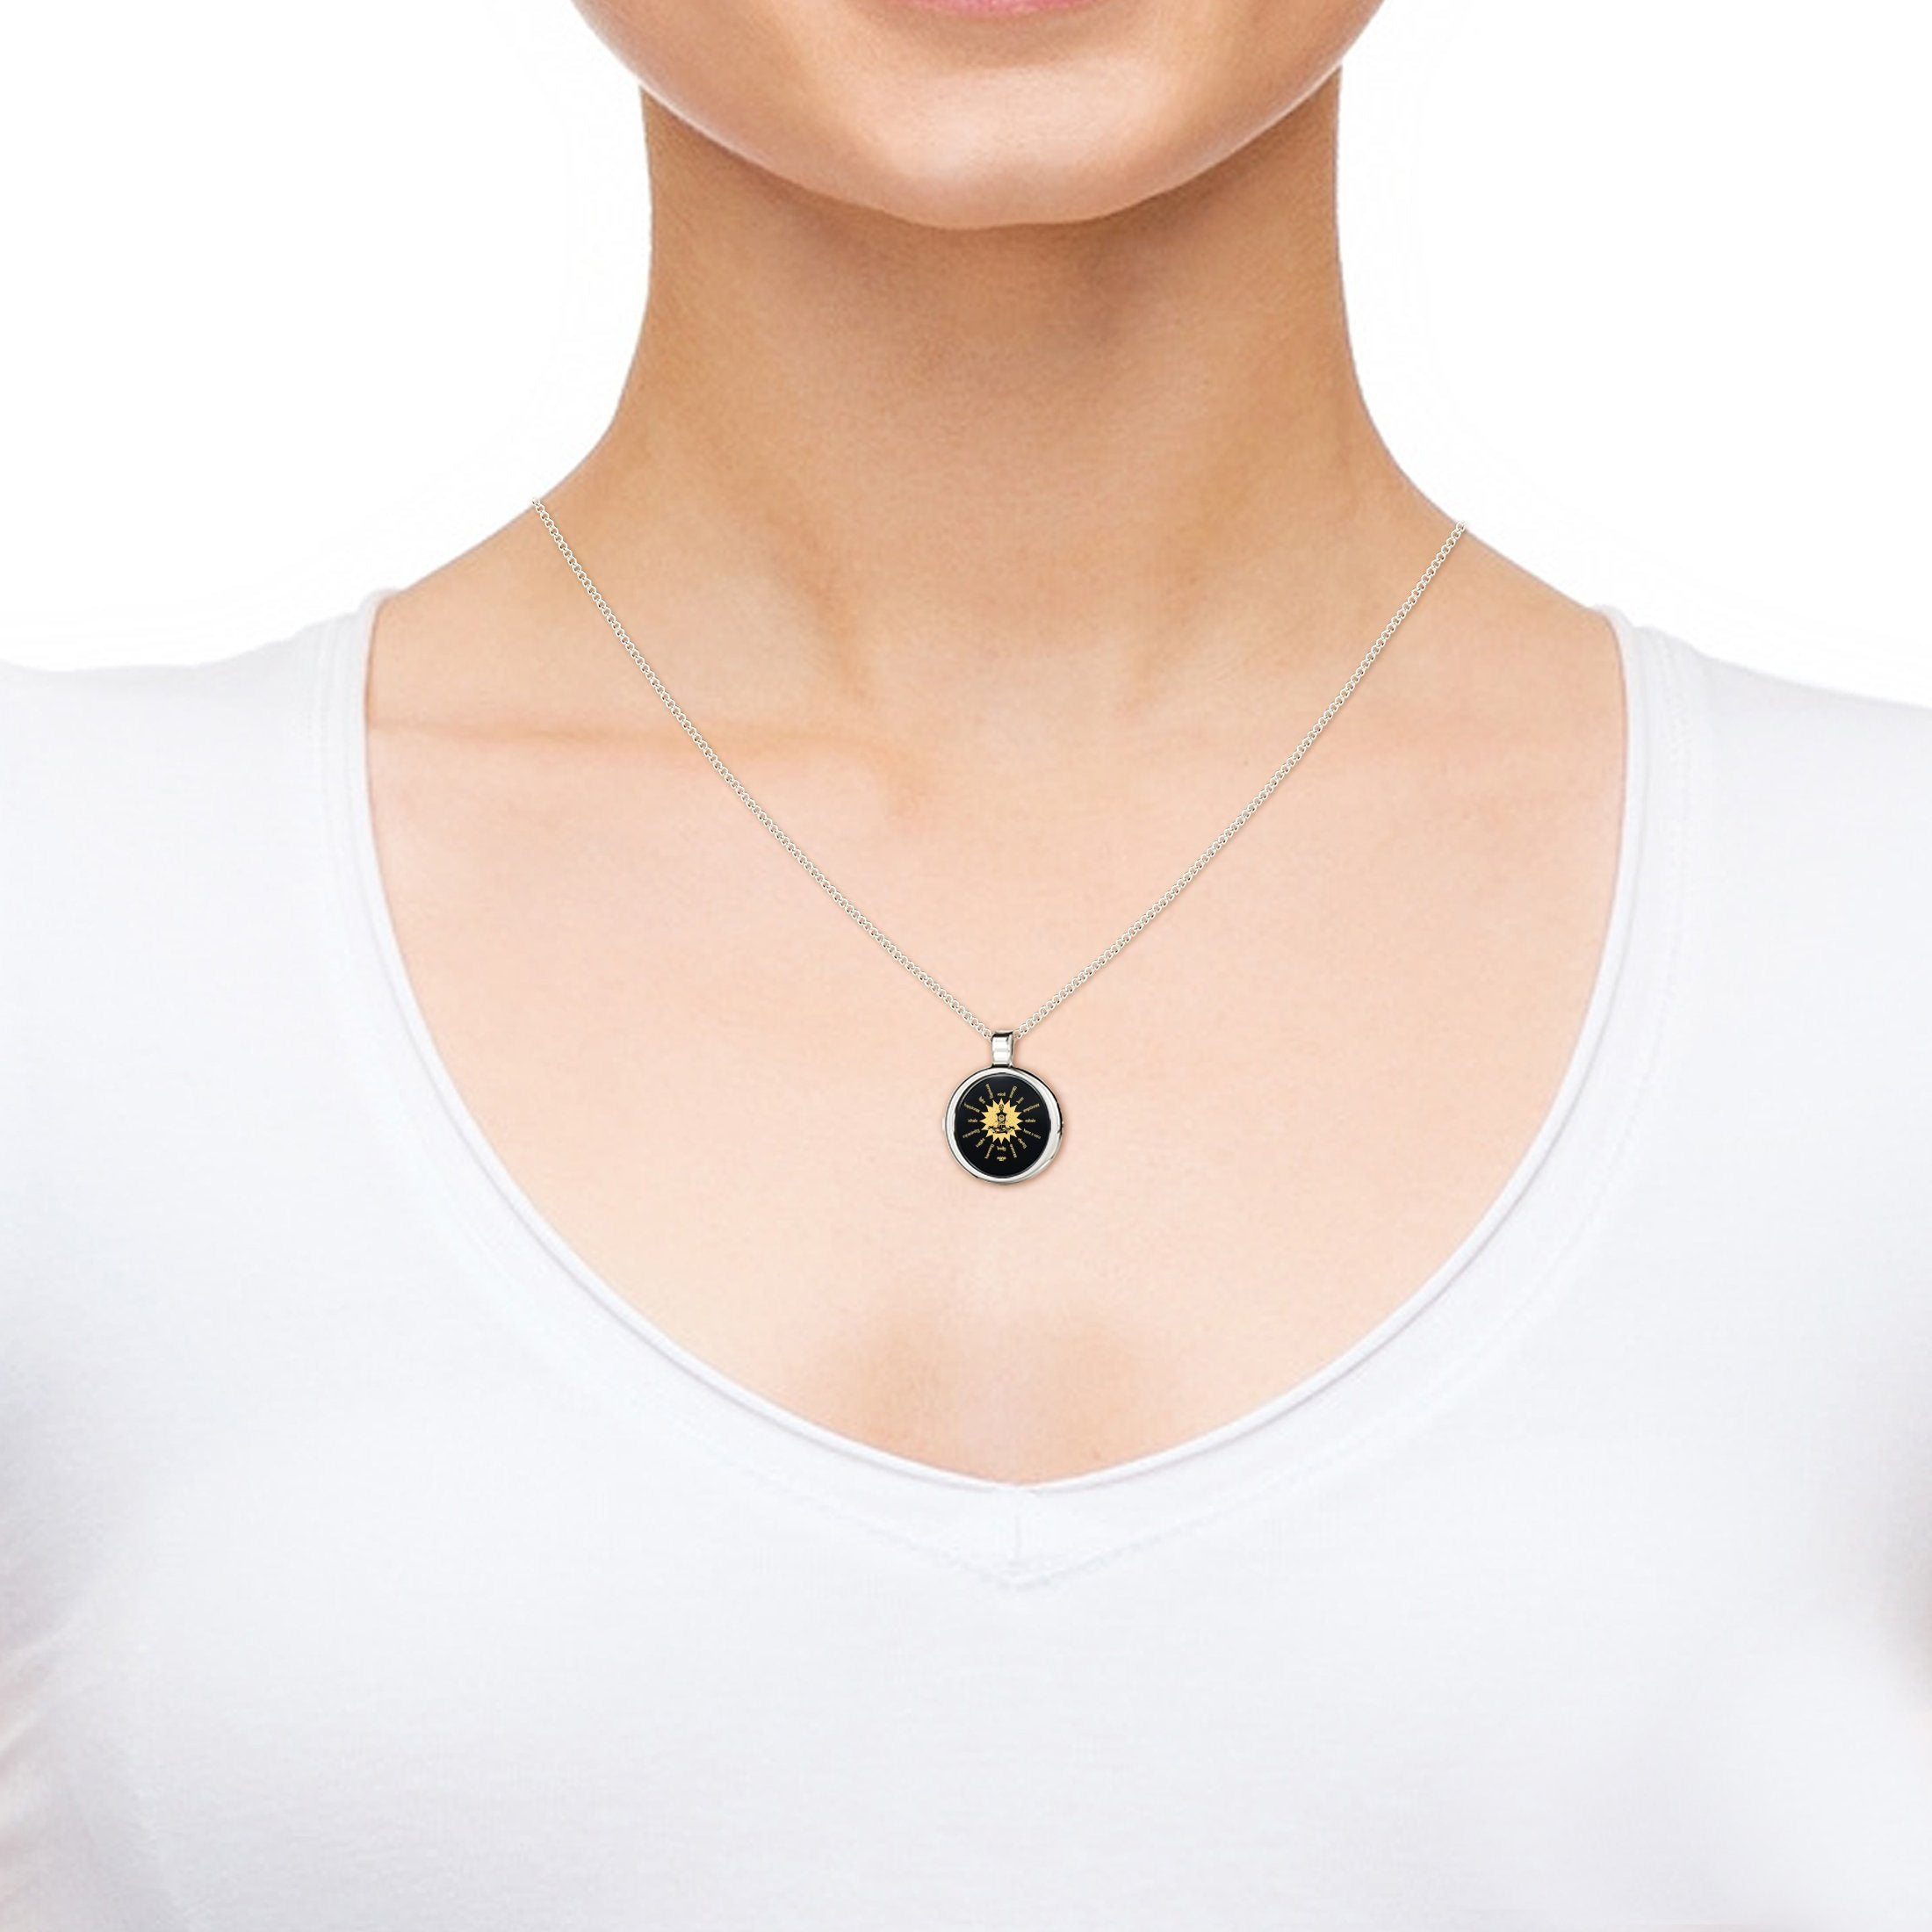 Women's Buddha Necklace, Nano Jewelry